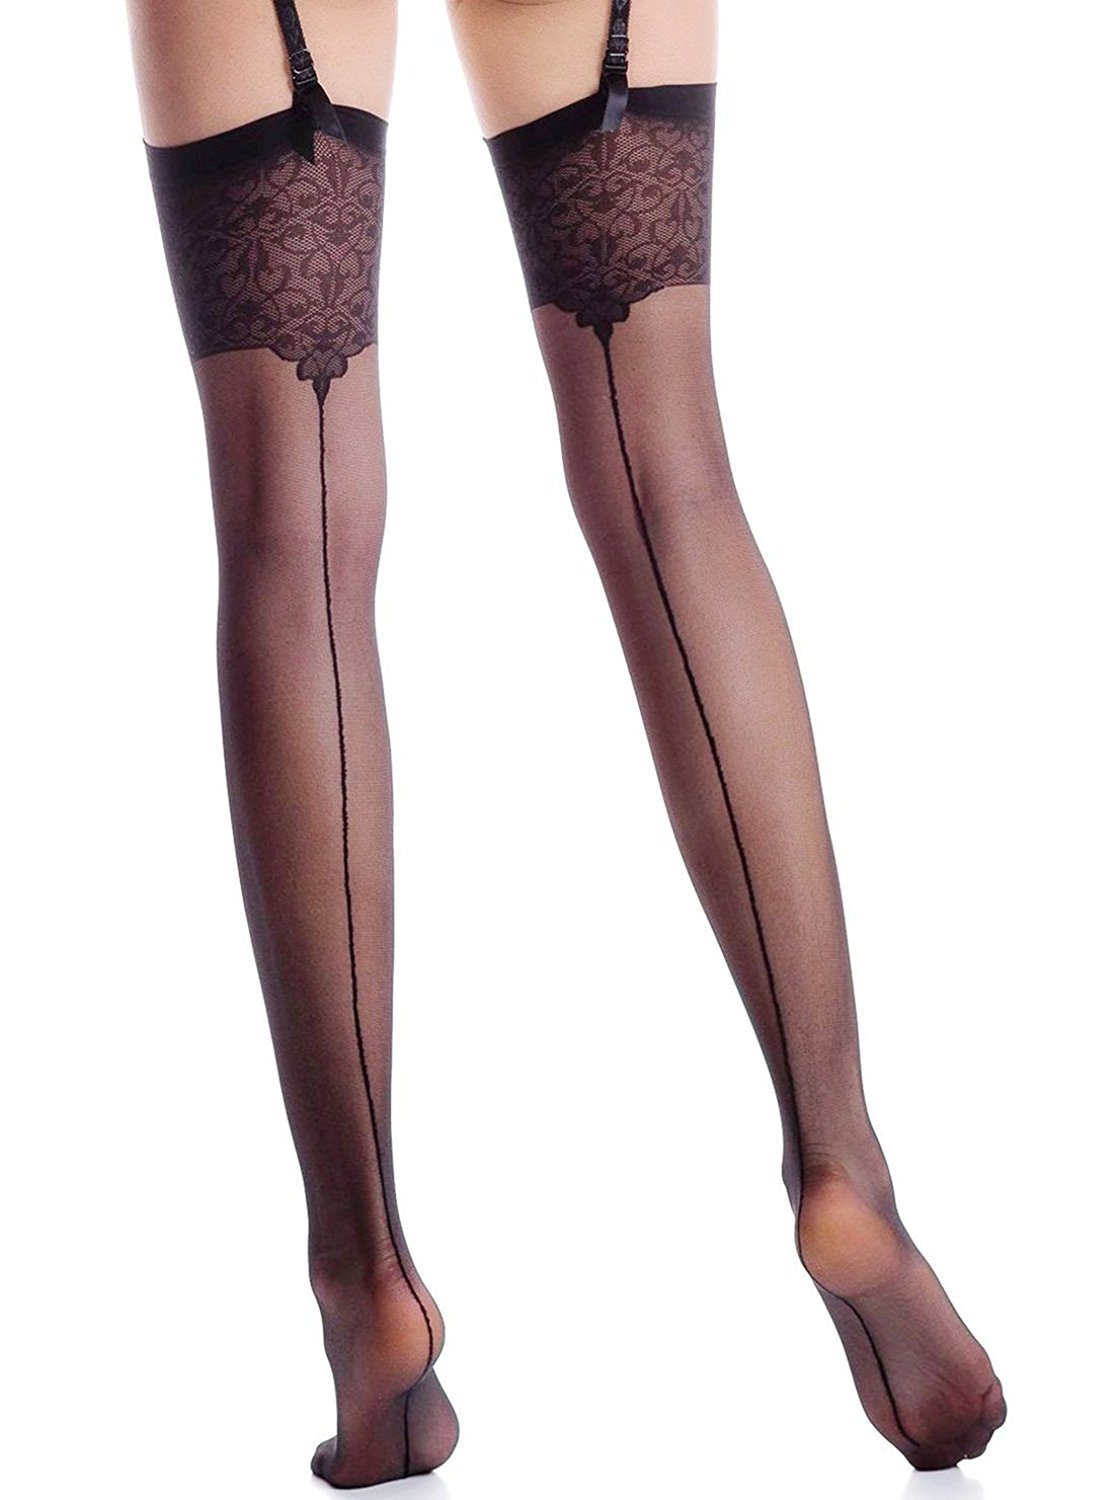 351511960 Get Quotations · Women s Patterned Top Thigh High Stockings for Garter Belt  Nylons